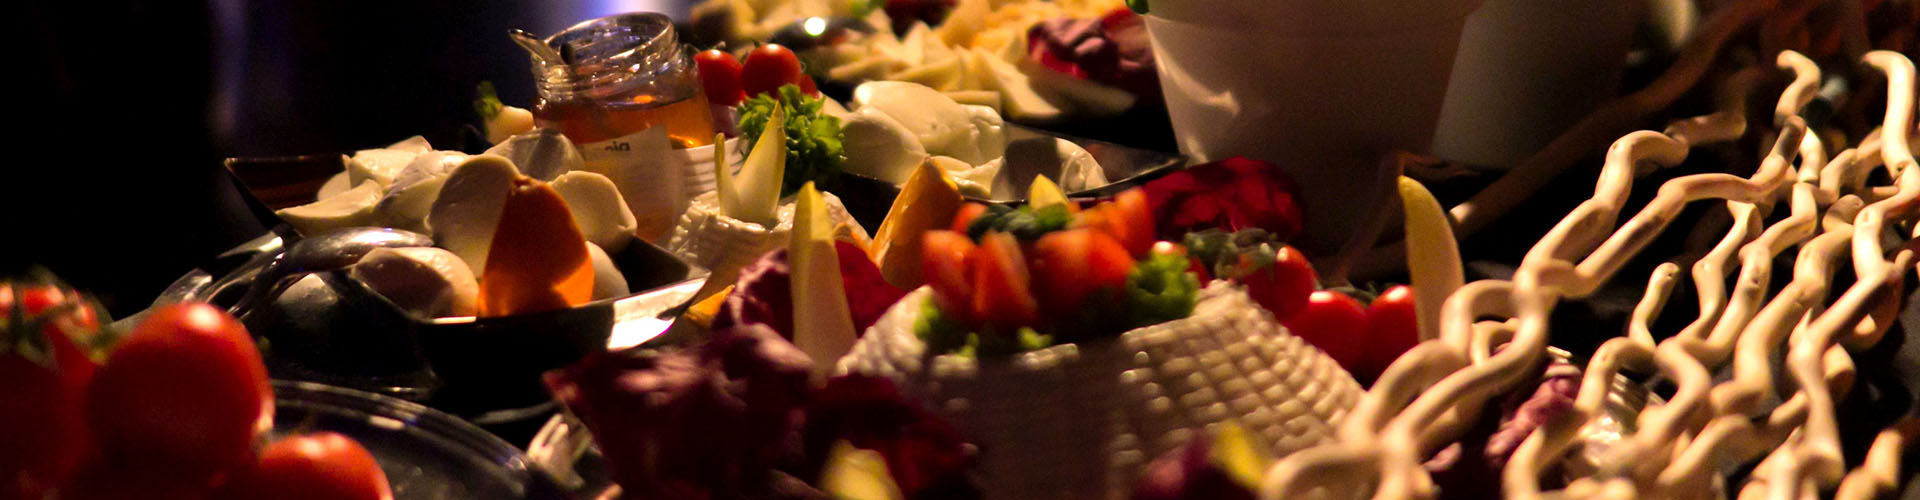 Catering and Receptions